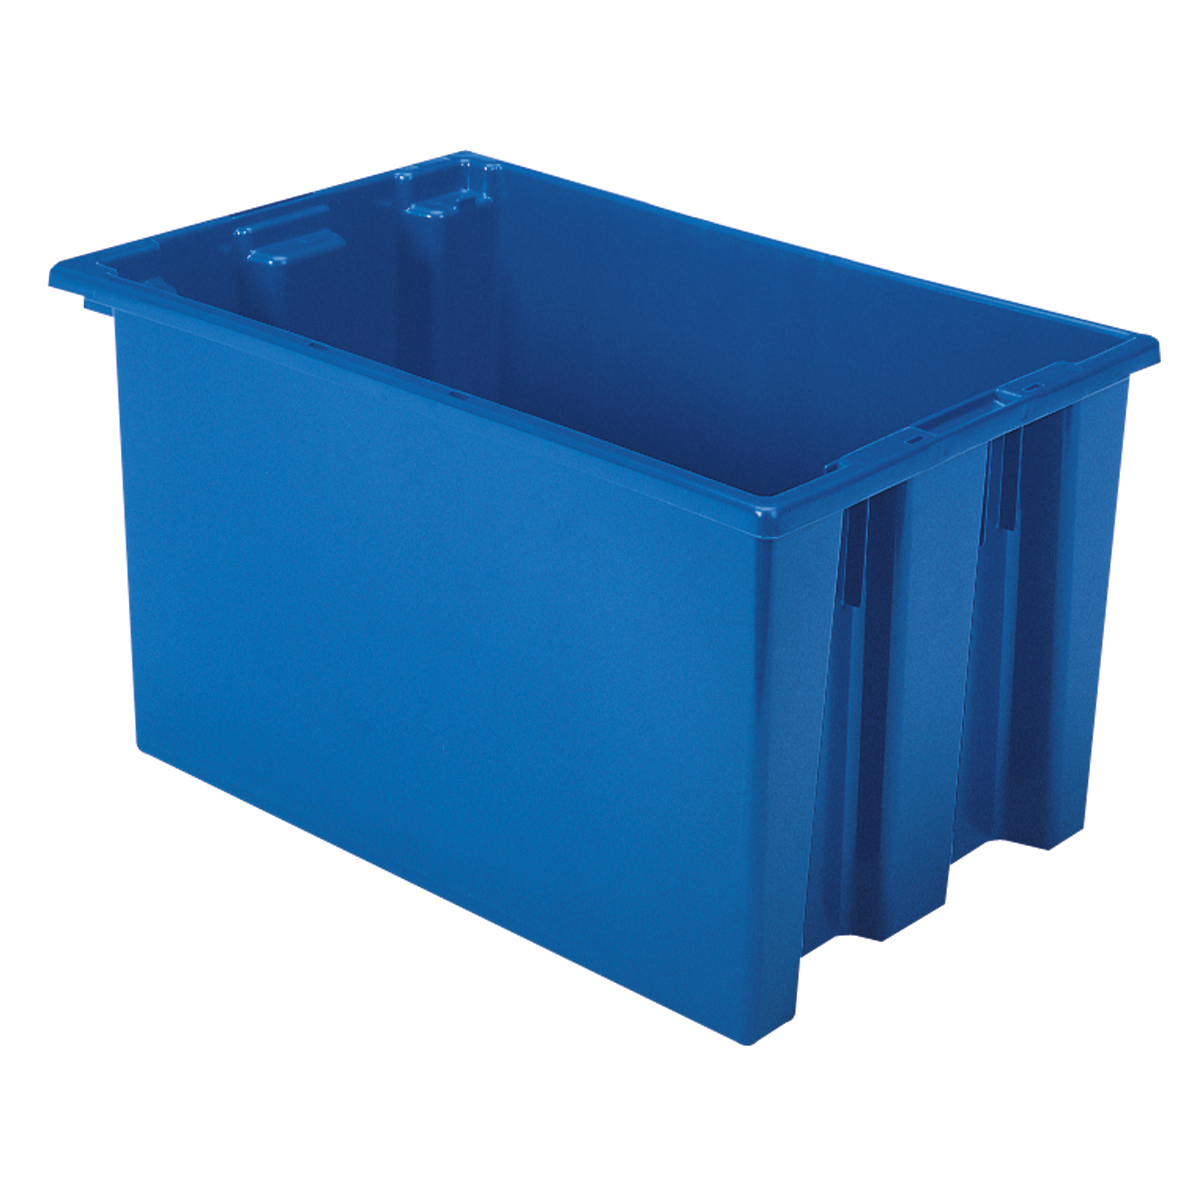 Nest & Stack Tote 23-1/2 x 15-1/2 x 12, Blue (35240BLUE).  This item sold in carton quantities of 3.